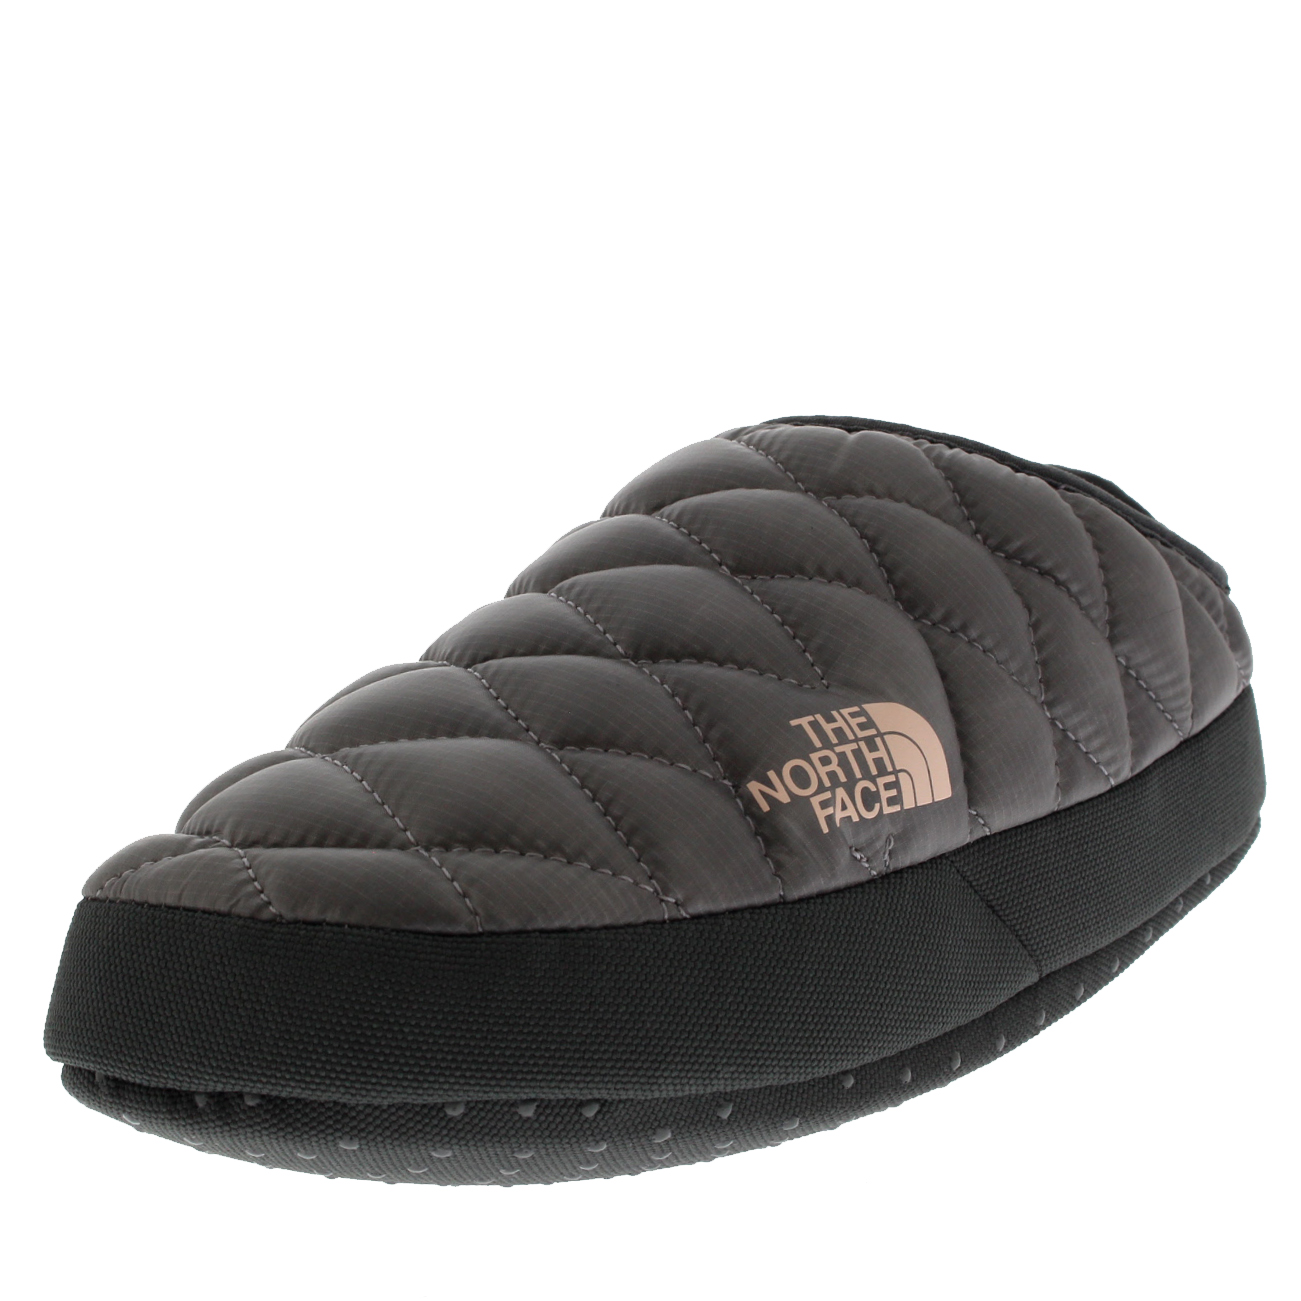 Womens-The-North-Face-Thermoball-Tent-Mule-IV-  sc 1 st  eBay & Womens The North Face Thermoball Tent Mule IV Water Resistant ...